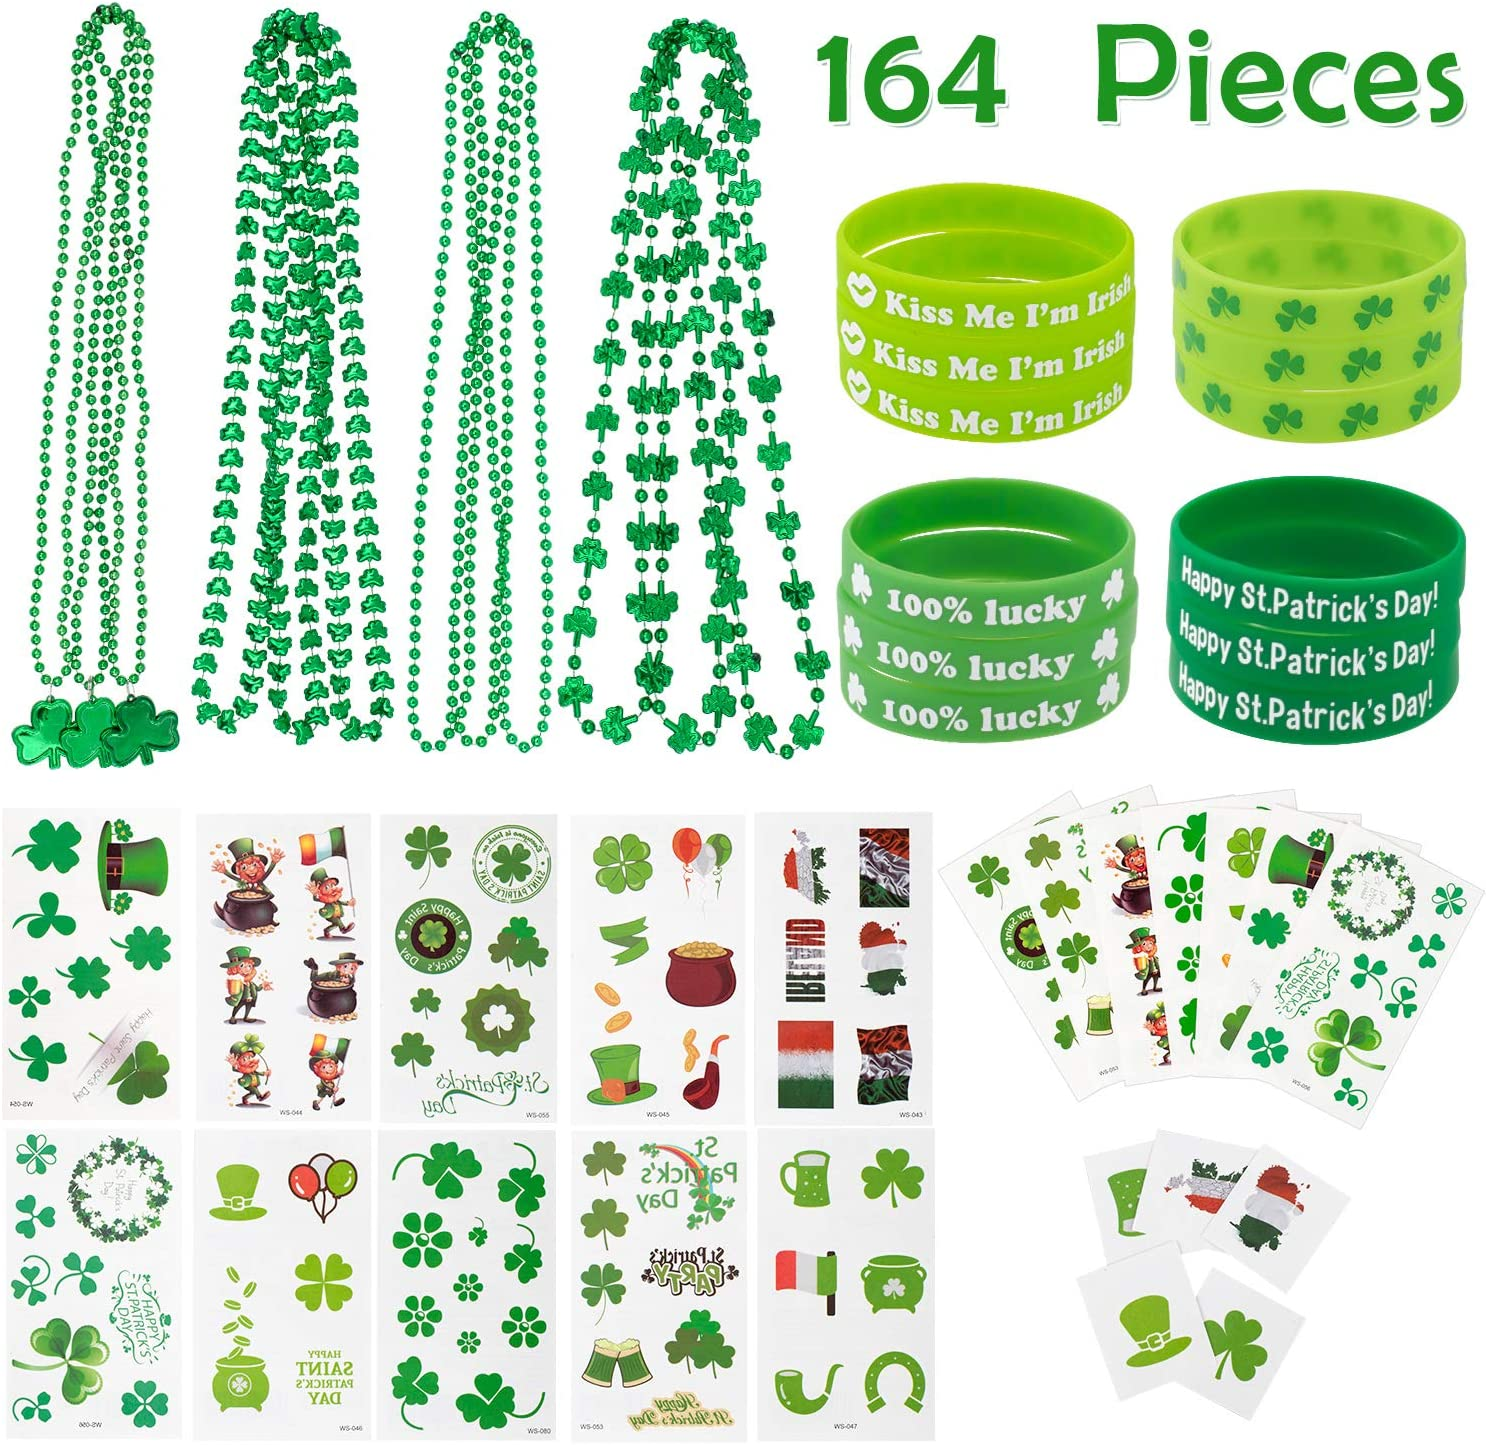 Patrick Irish Party Supplies Decorations Whaline 164 Pieces St Patrick/'s Day Party Favor Set Include 12 Green Rubber Wristbands bracelet 12 Shamrock Necklace and 140 Piece Temporary Tattoo Sticker for St